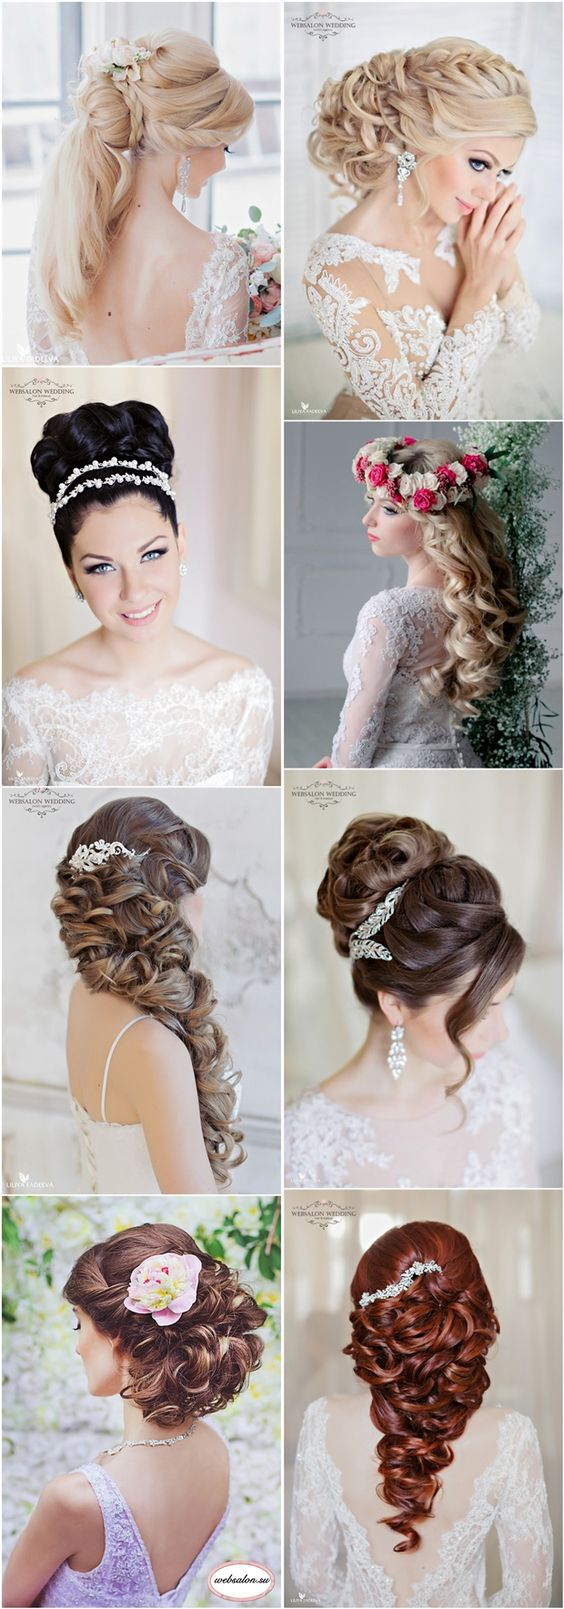 Peachy Updo Wedding And Hairstyles For Brides On Pinterest Short Hairstyles For Black Women Fulllsitofus